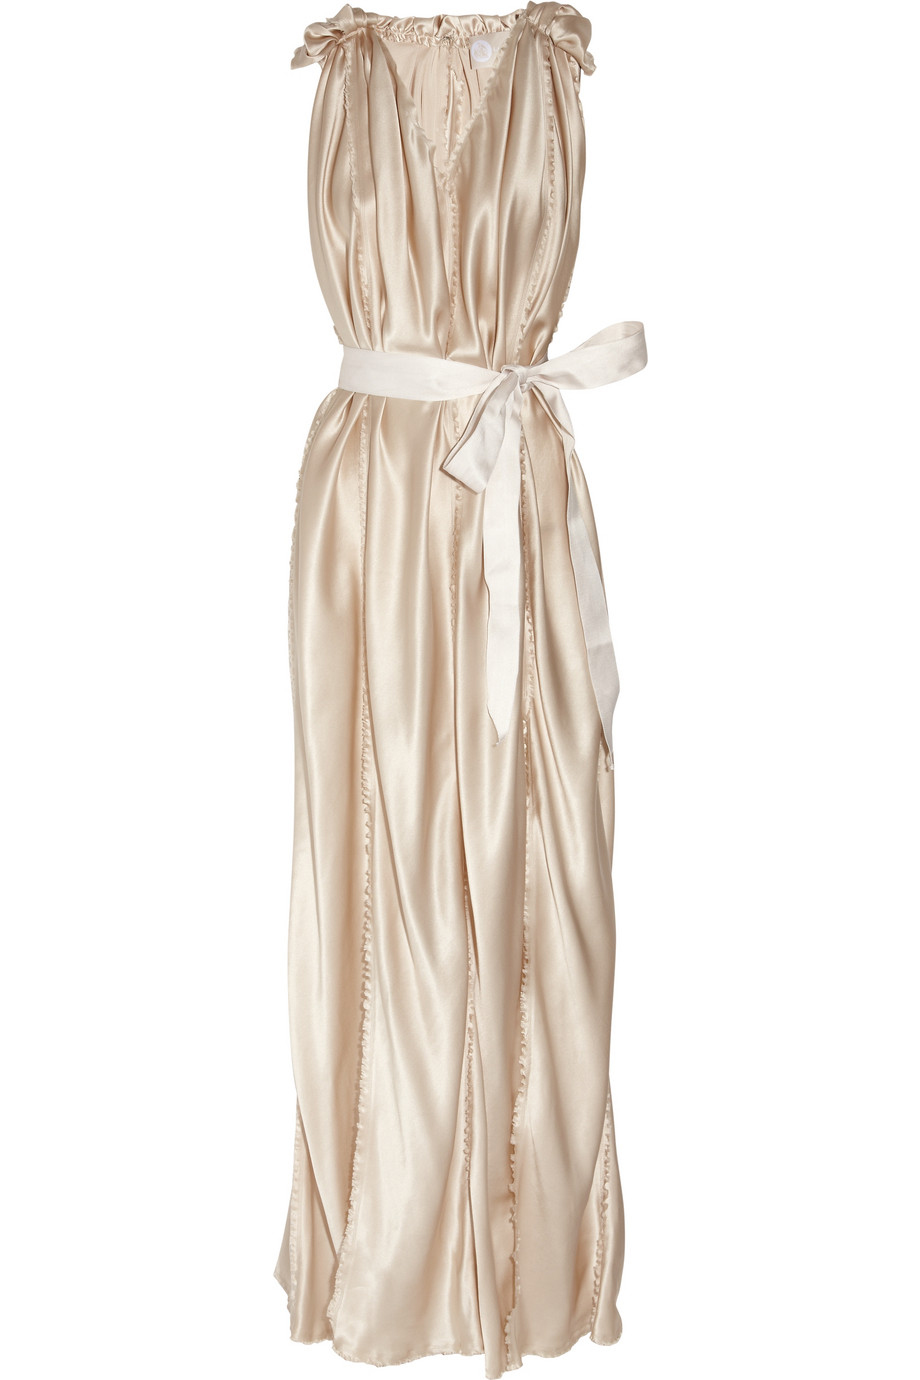 Lanvin Wedding Gown